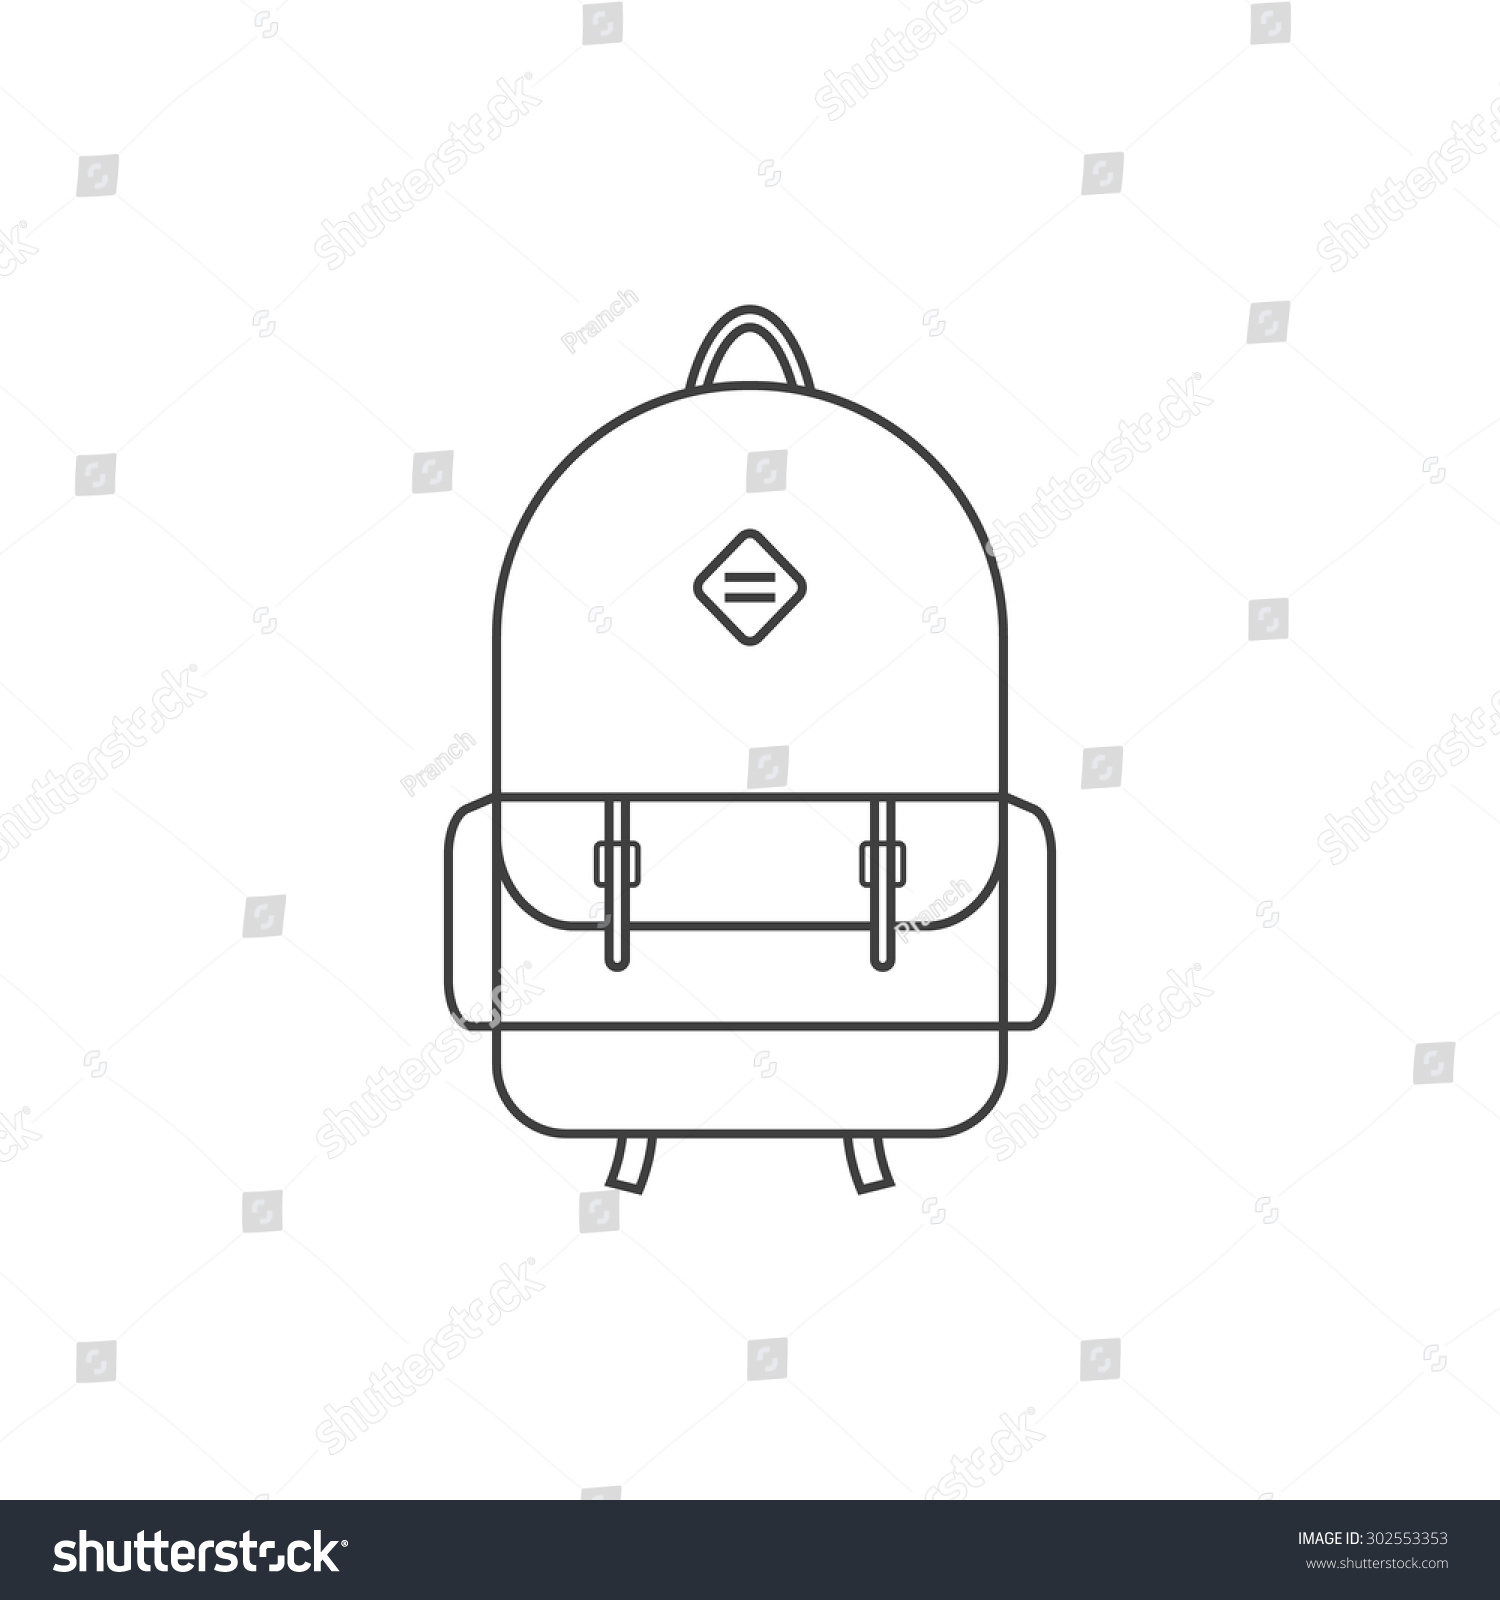 School bag diagram - Thin Line Black Backpack Icon Concept Of Camping Recreation Route Haversack Schoolbag